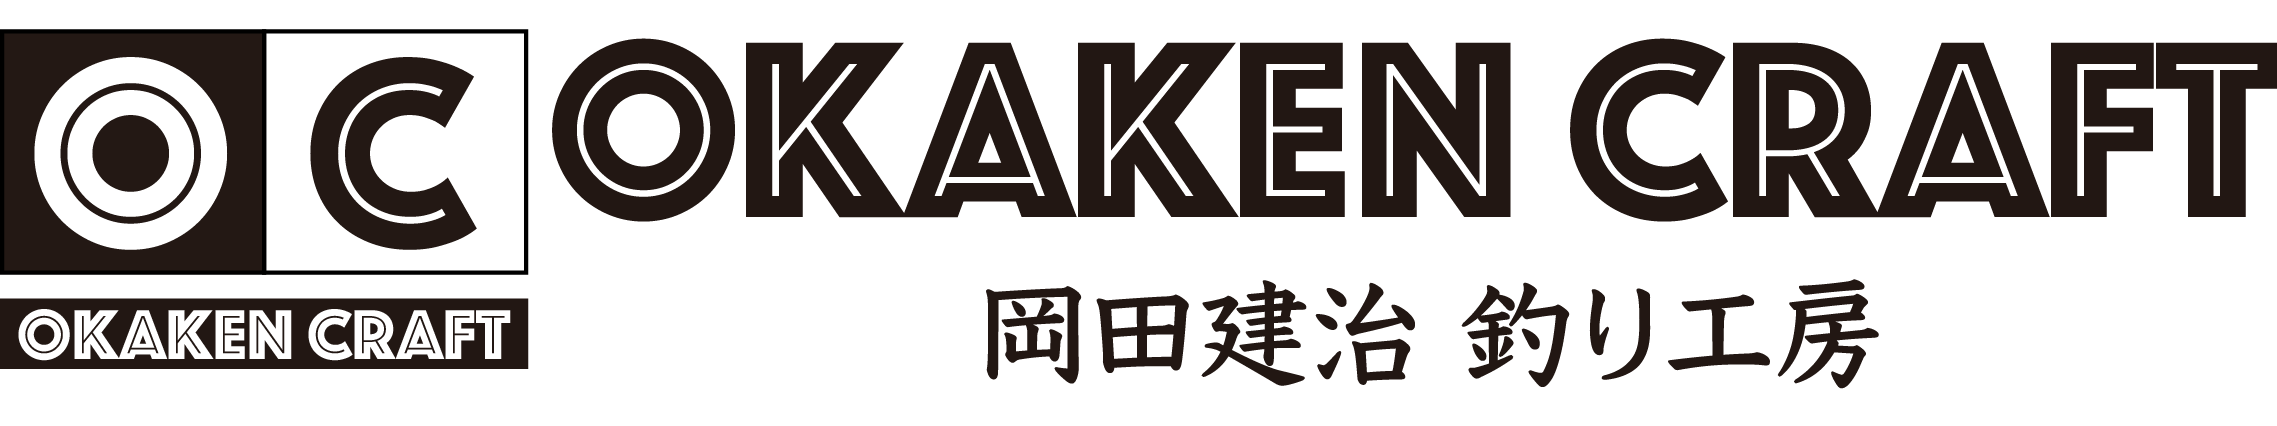 OKAKEN CRAFT